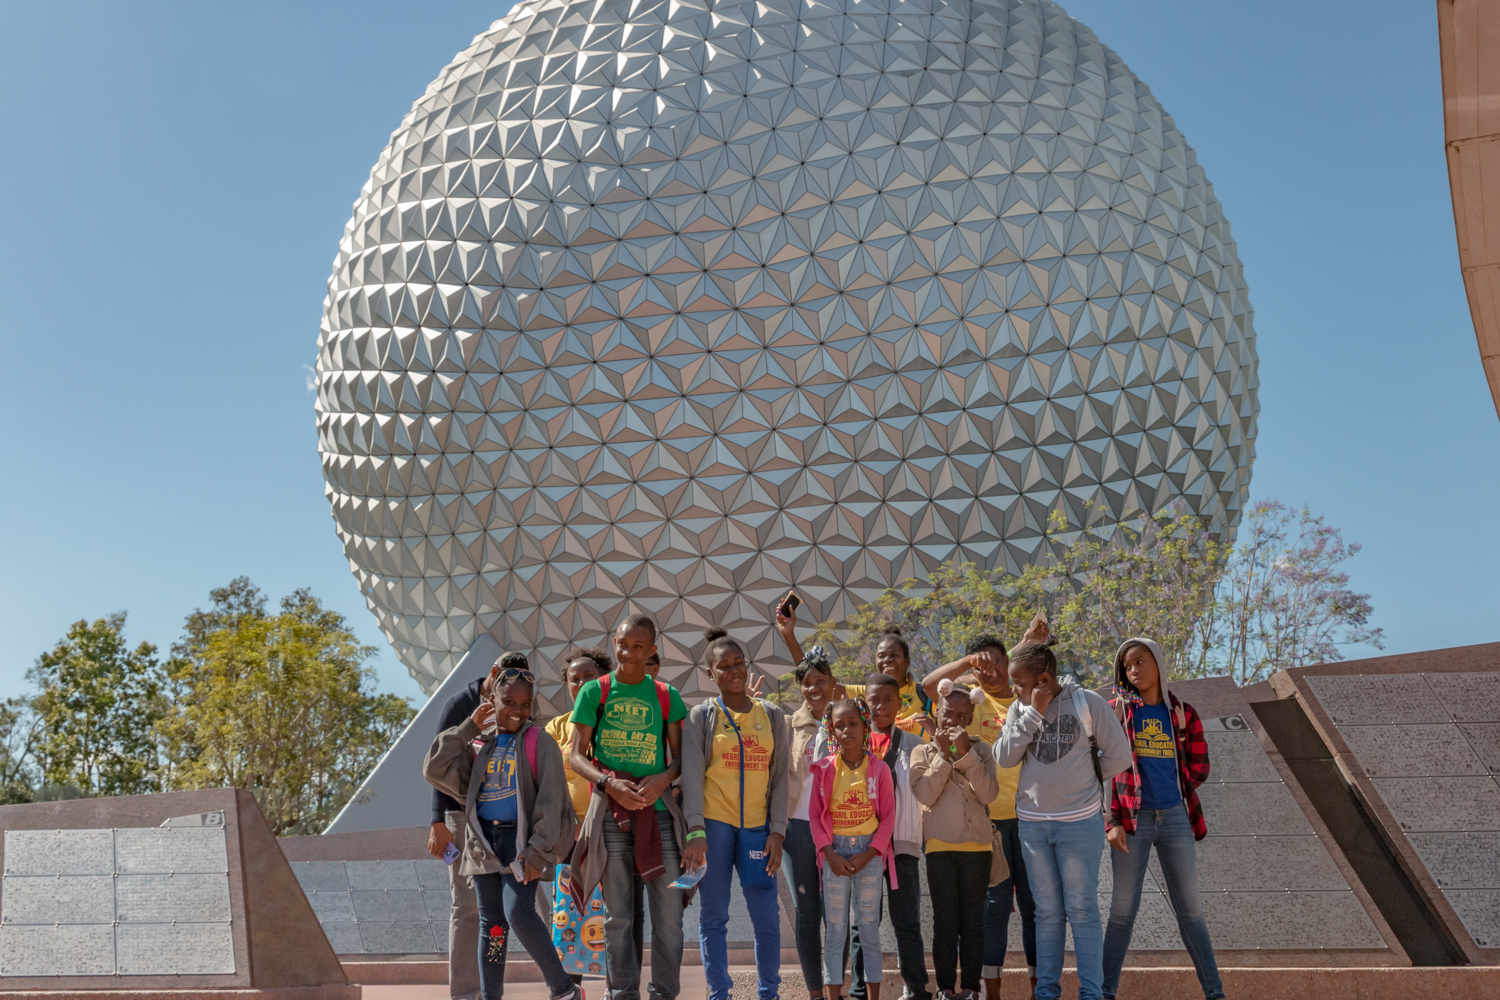 Group picture at Disney